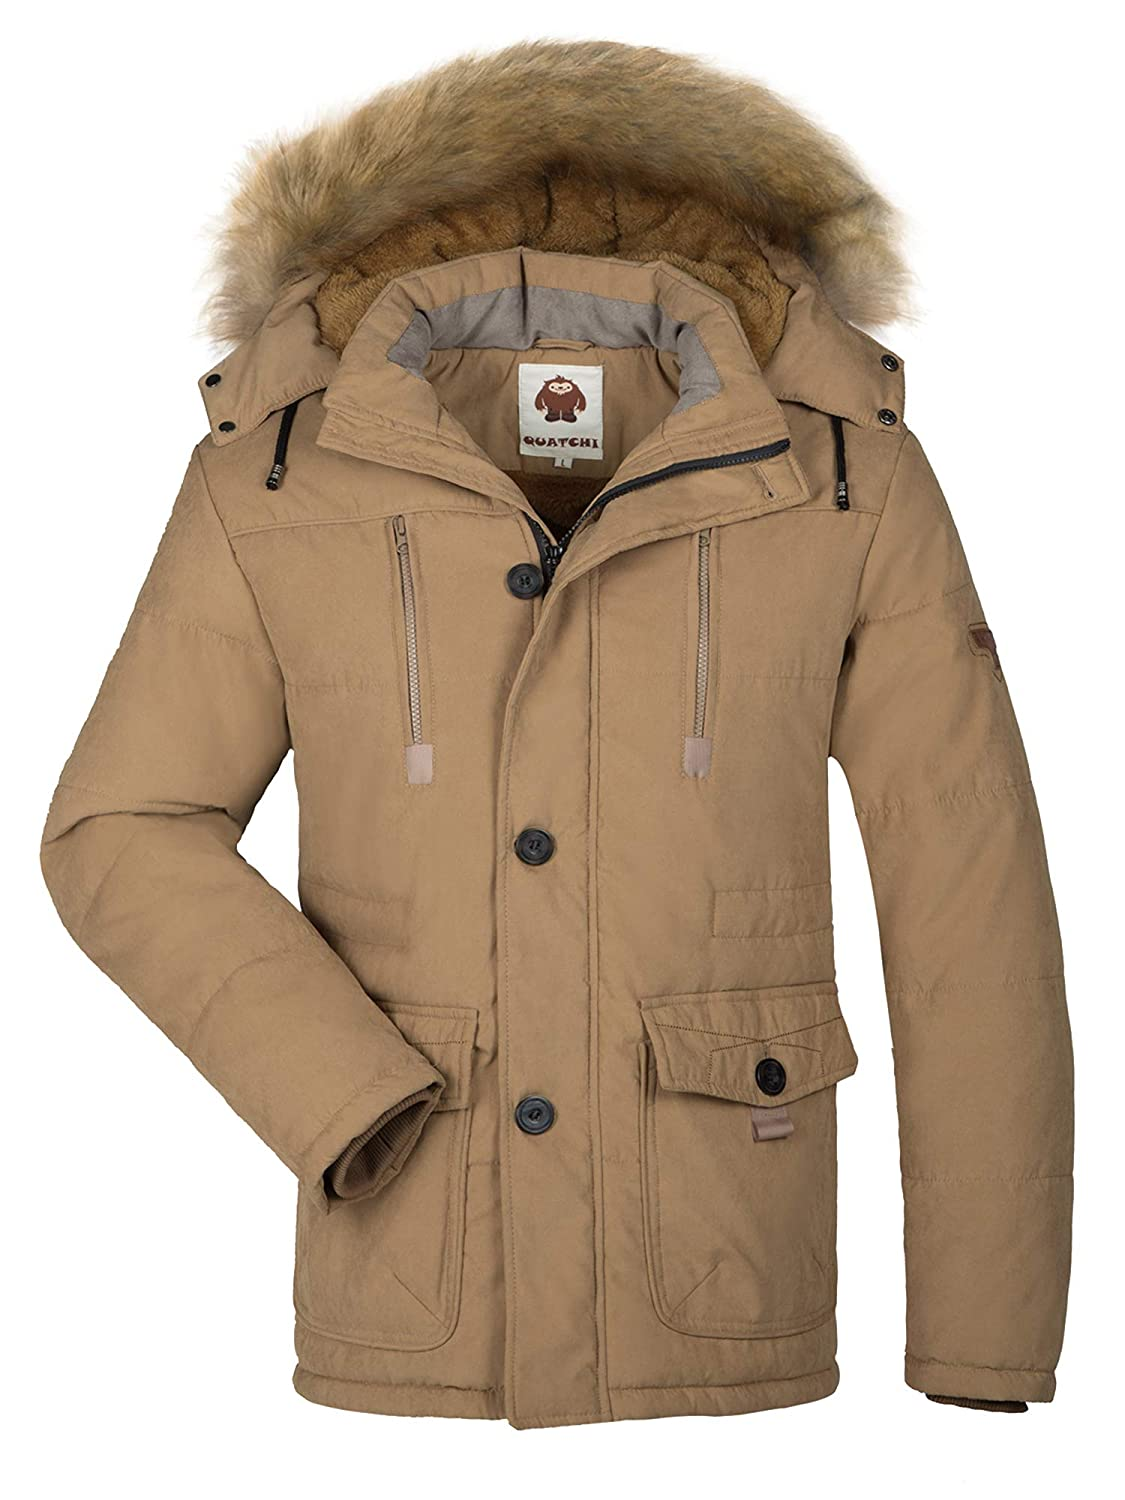 HAINES Parka Jacket Mens Coats Fur Hood Winter Warmth Thicken Casual Outwear Coat